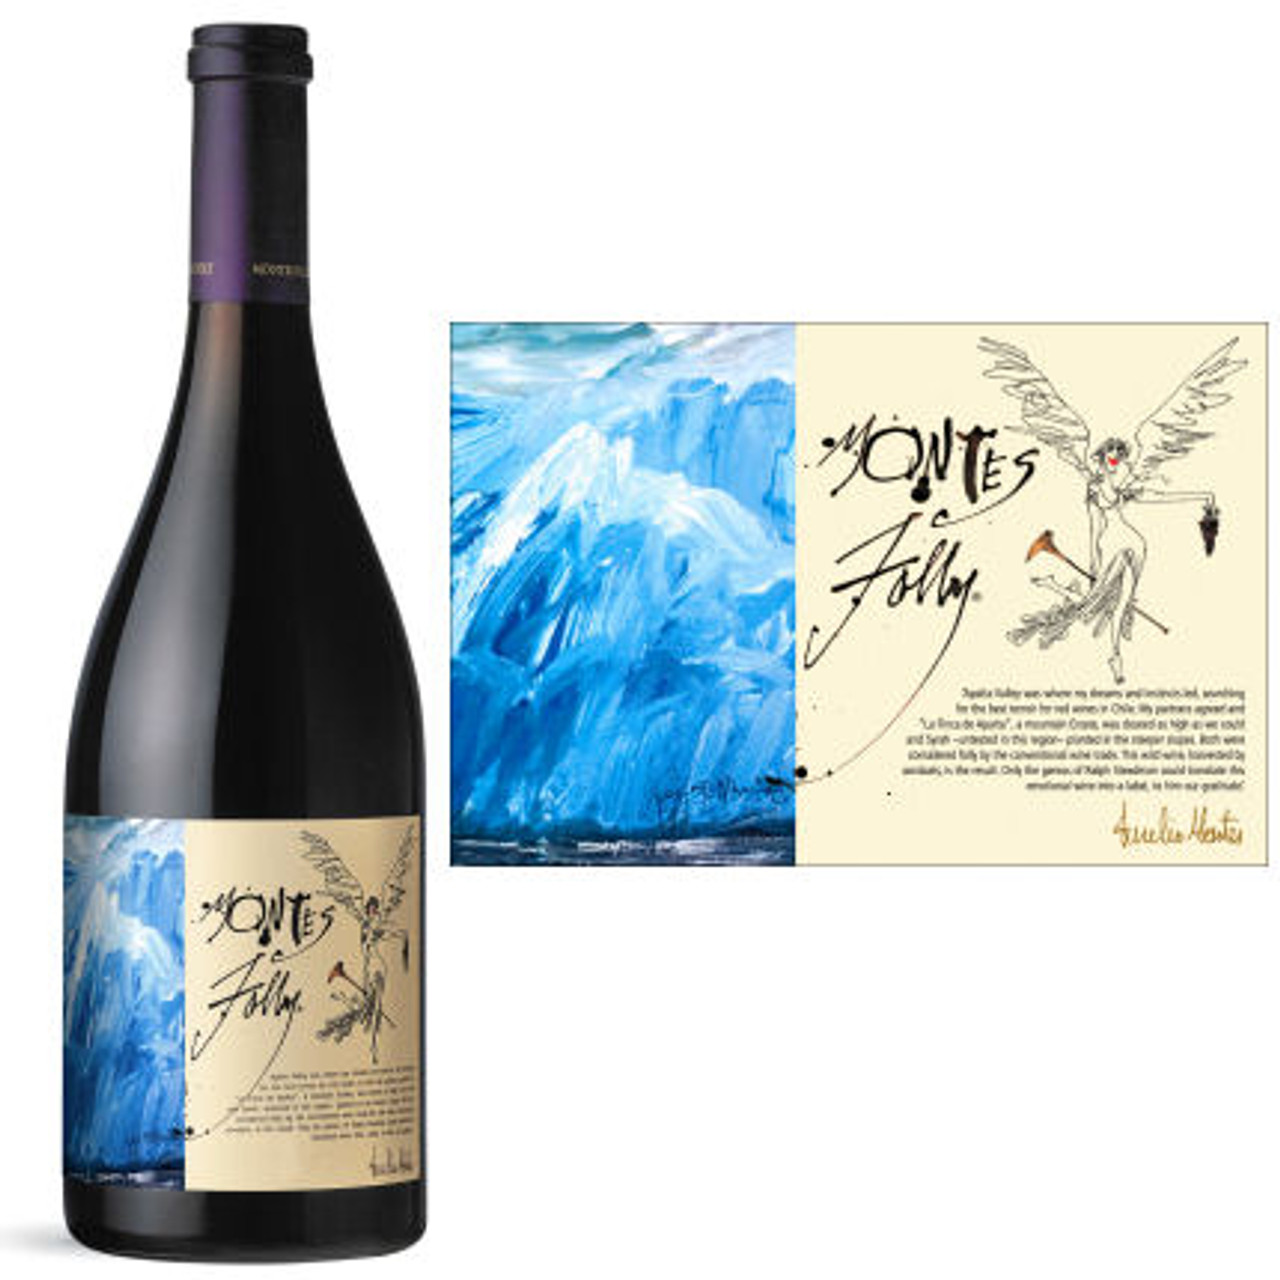 Montes Folly Colchagua Valley Syrah